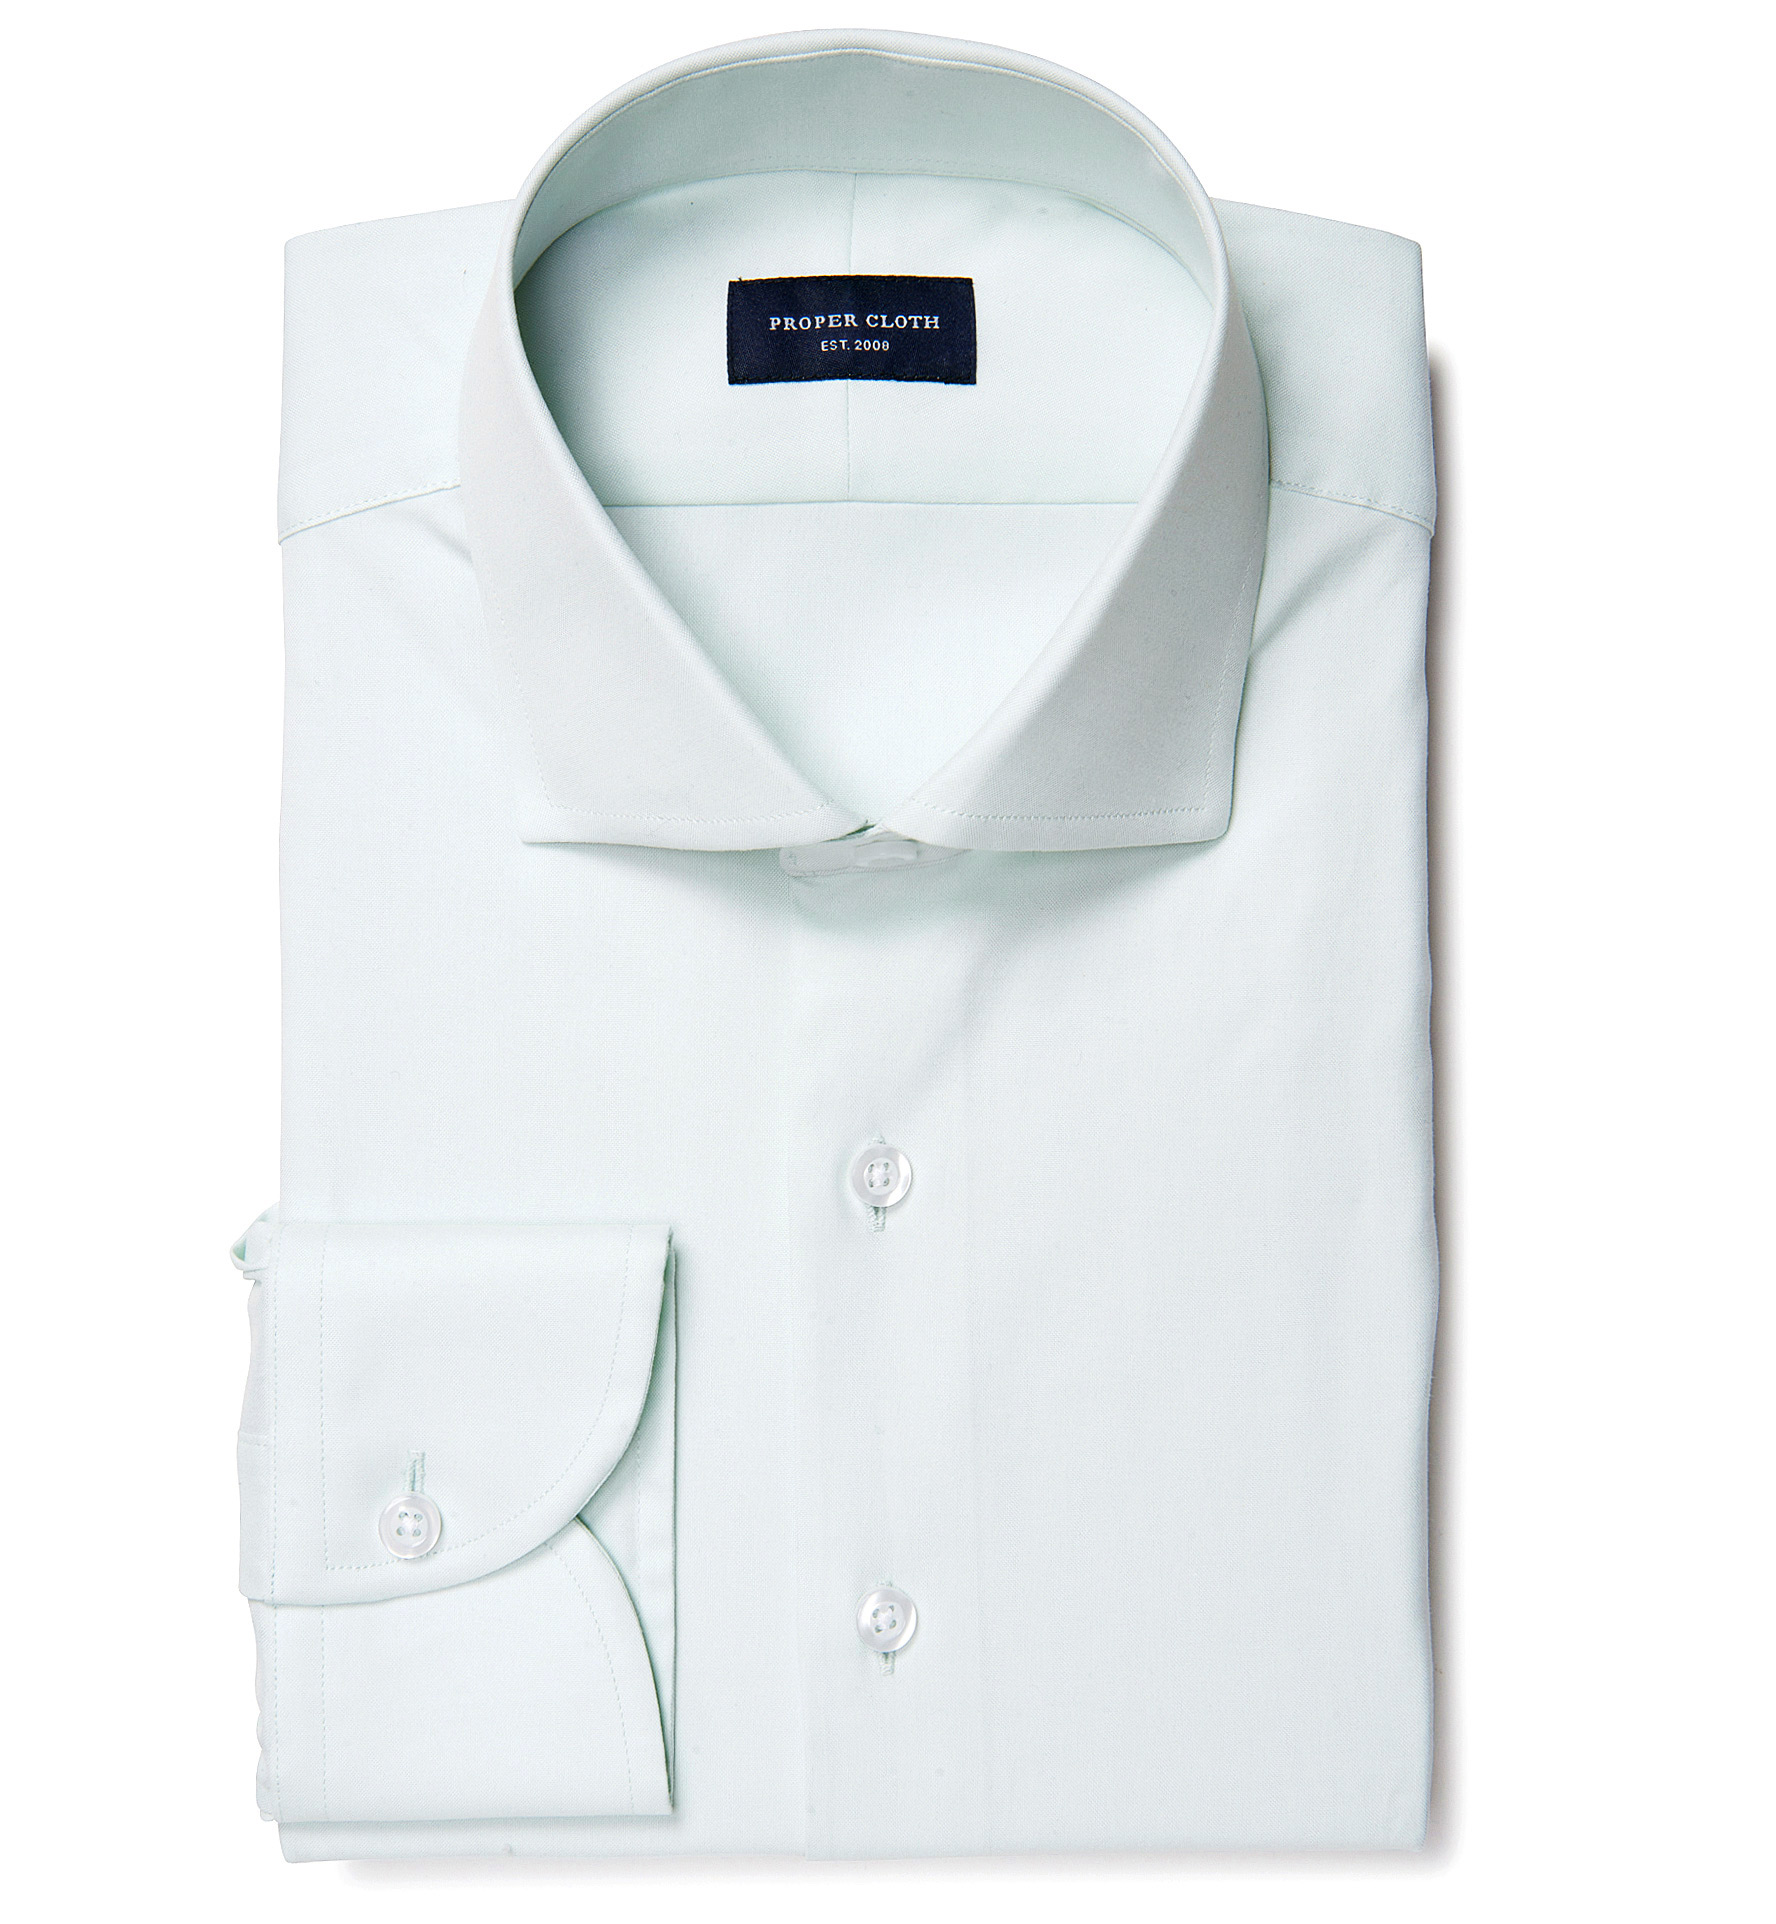 Bowery mint wrinkle resistant pinpoint dress shirt by for Proper cloth custom shirt price